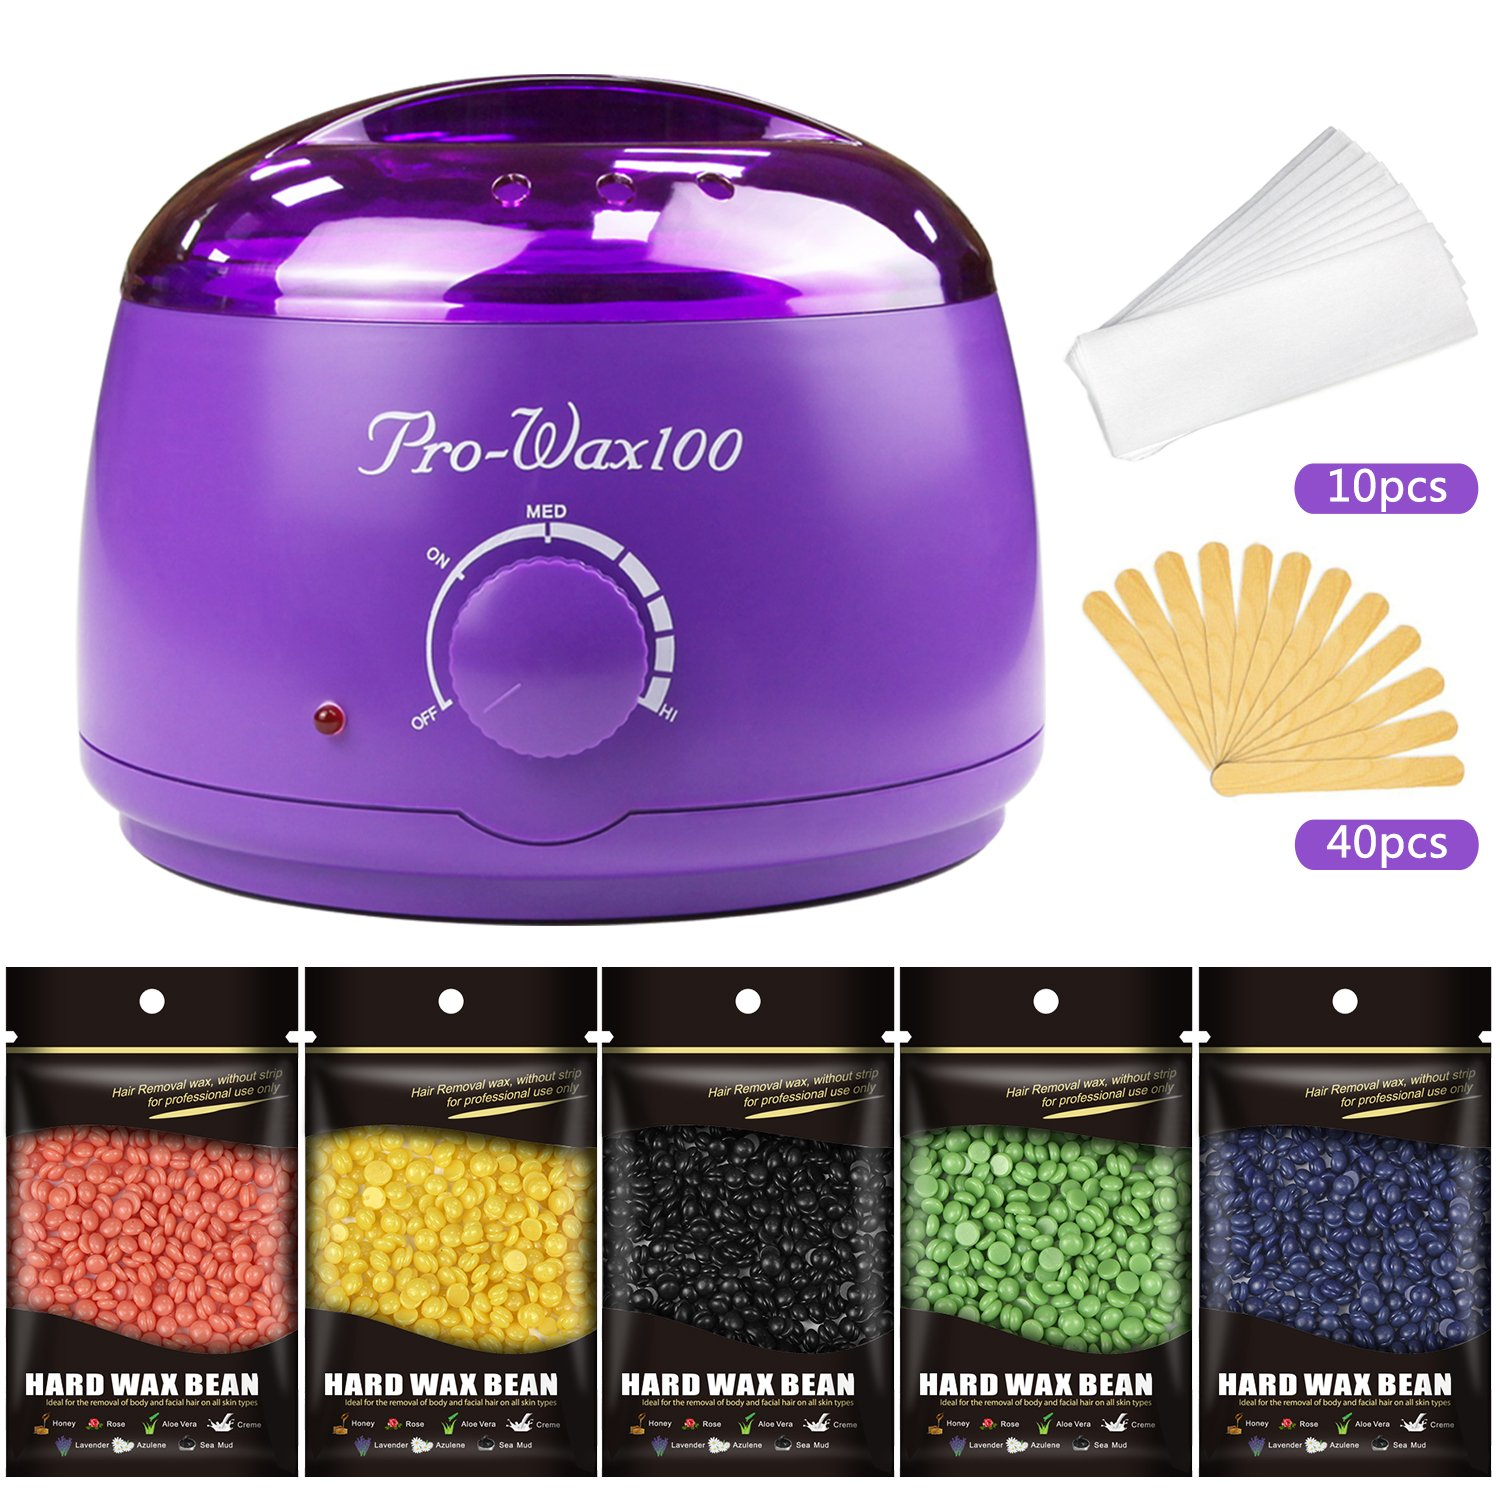 Hair Removal Wax Warmer Kit with 5 Flavors Hard Wax Beans and Wax Applicator Sticks By Mibote